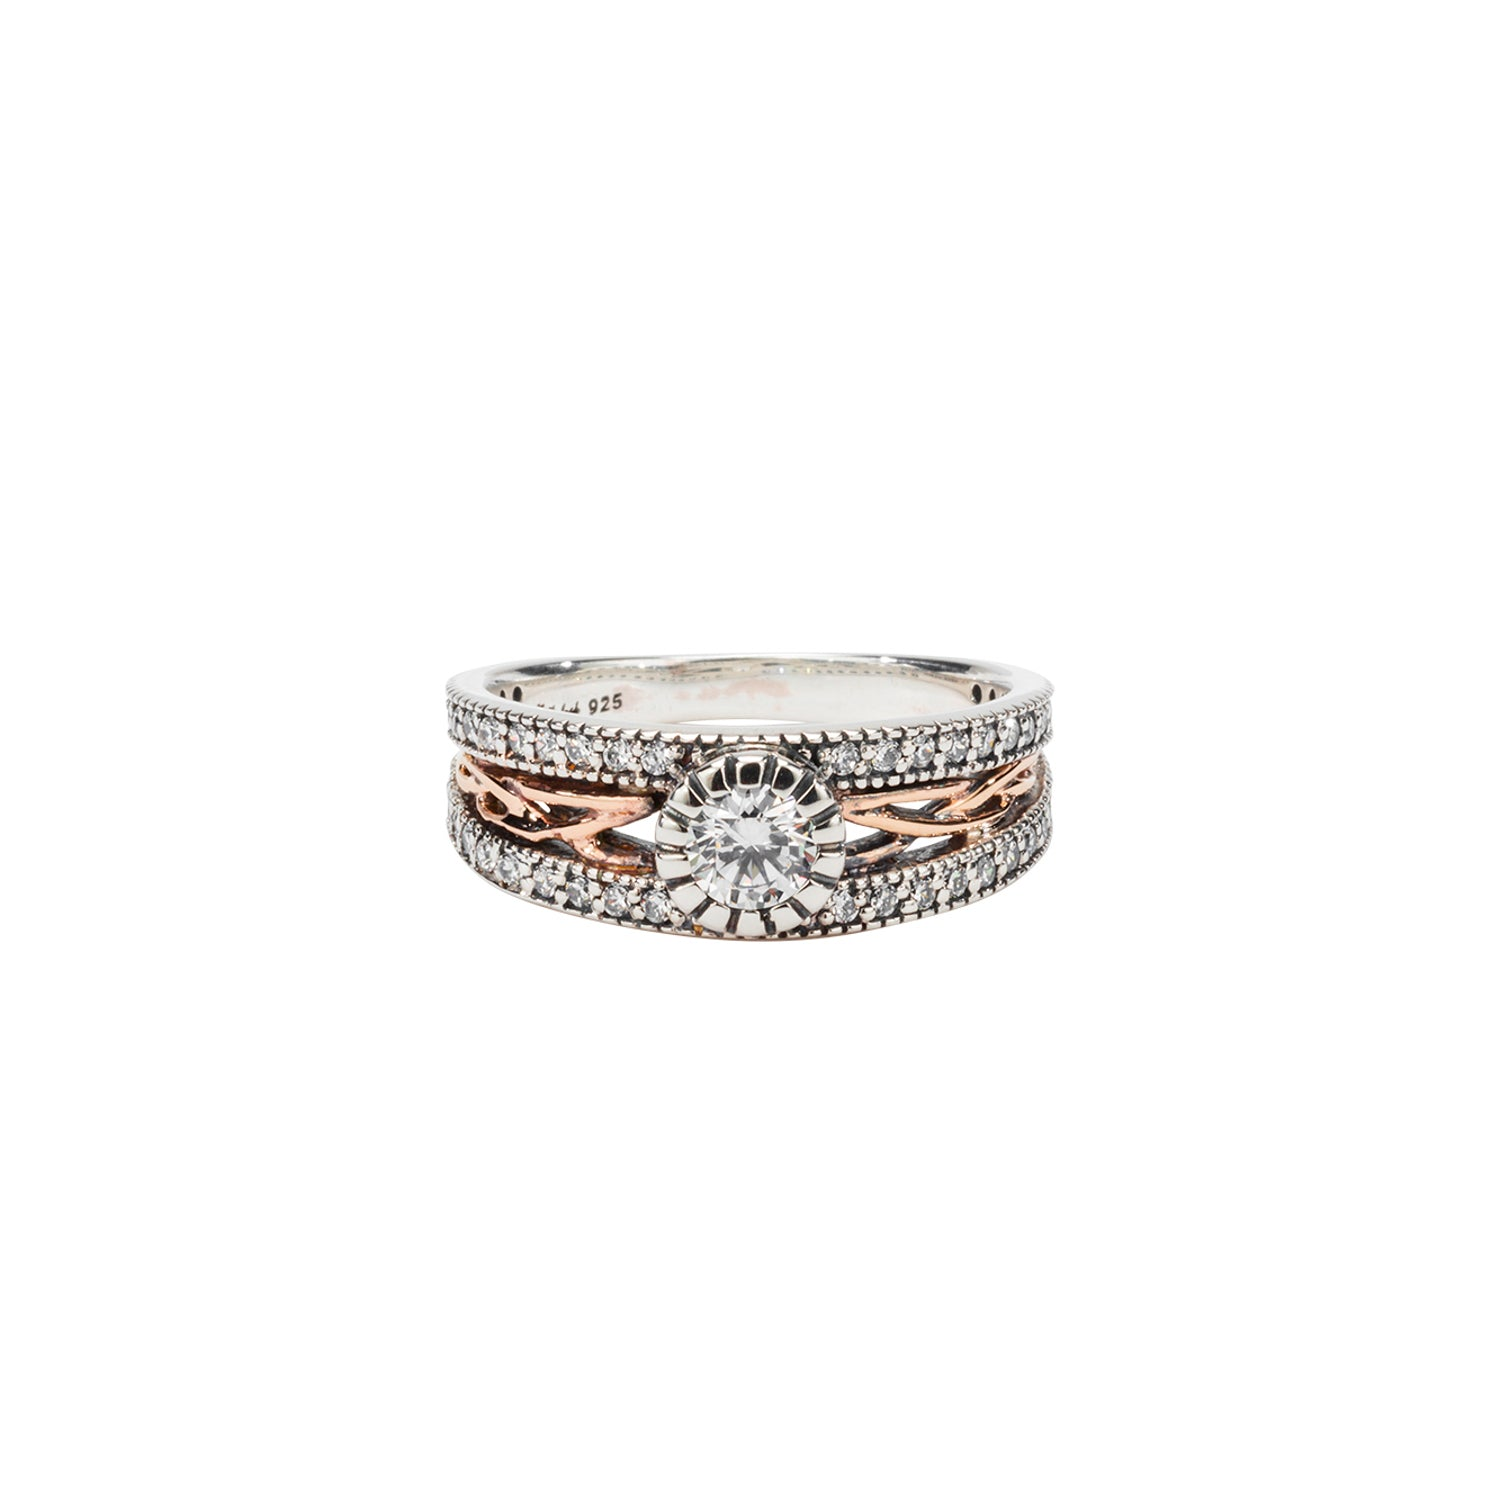 Ring Bands Oxidized 10k Rose CZ Brave Heart Ring (Tapered) from welch and company jewelers near syracuse ny